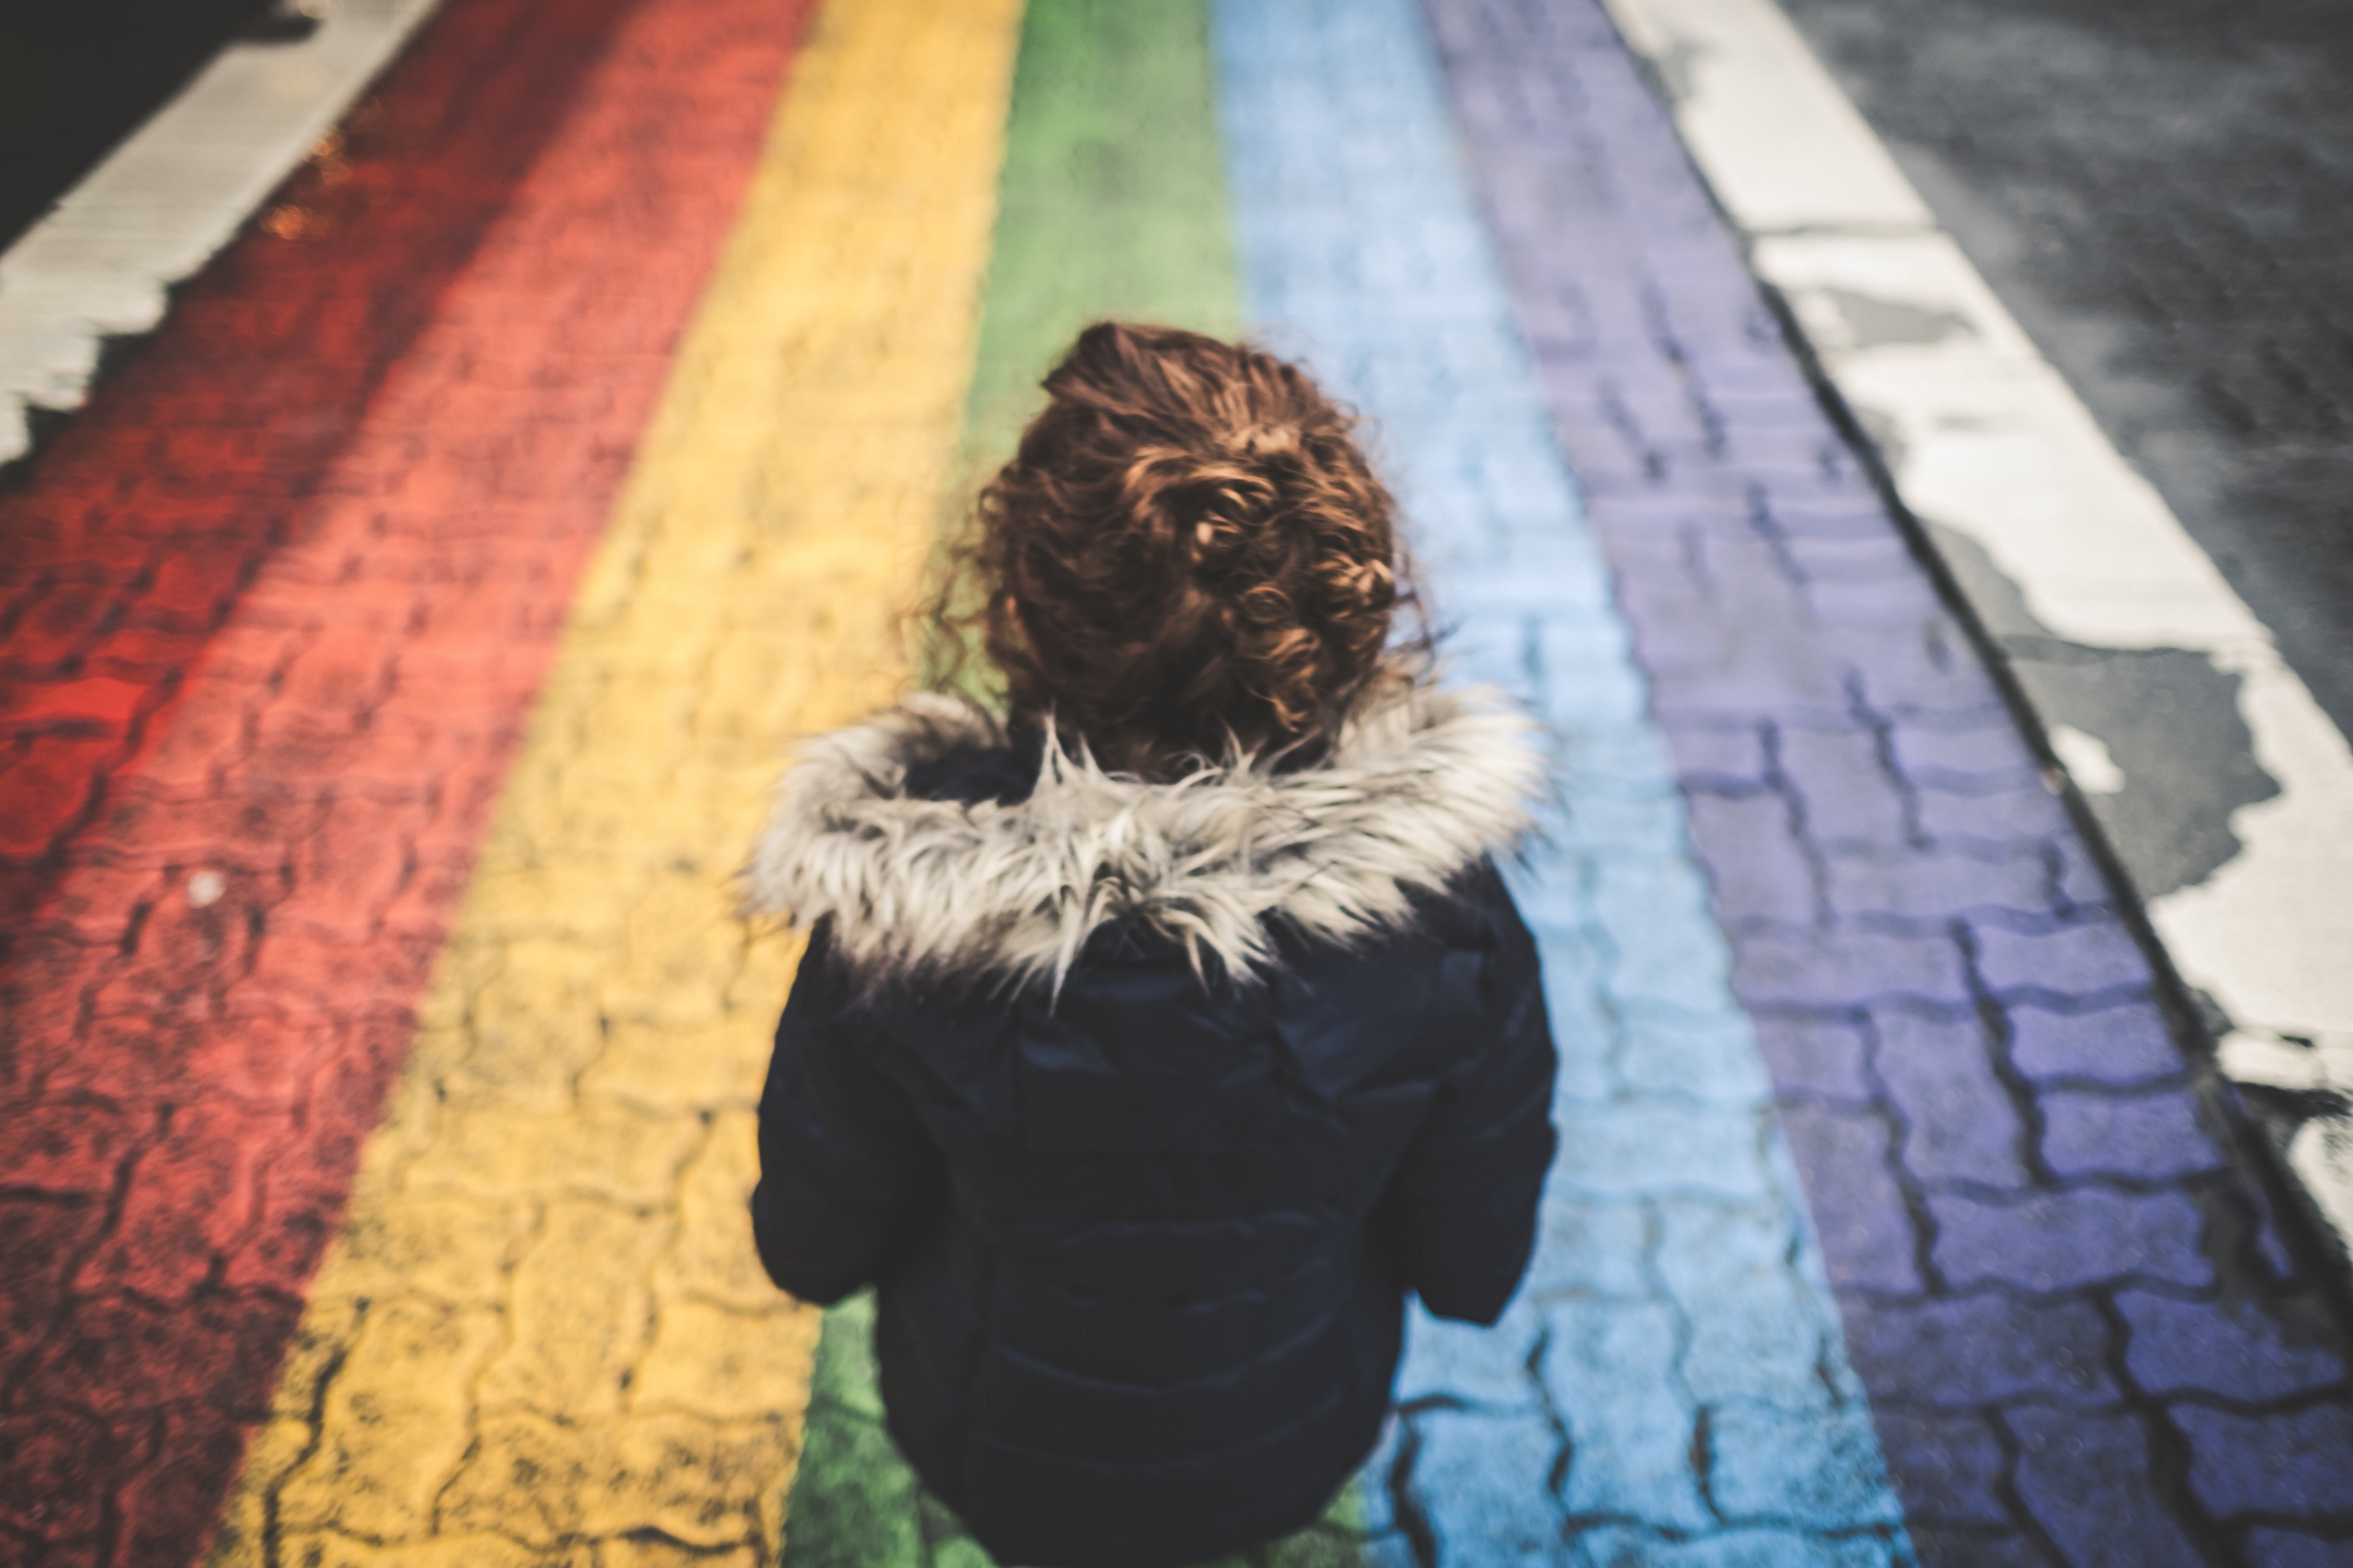 Woman with her back facing us, staring down a rainbow-painted walkway